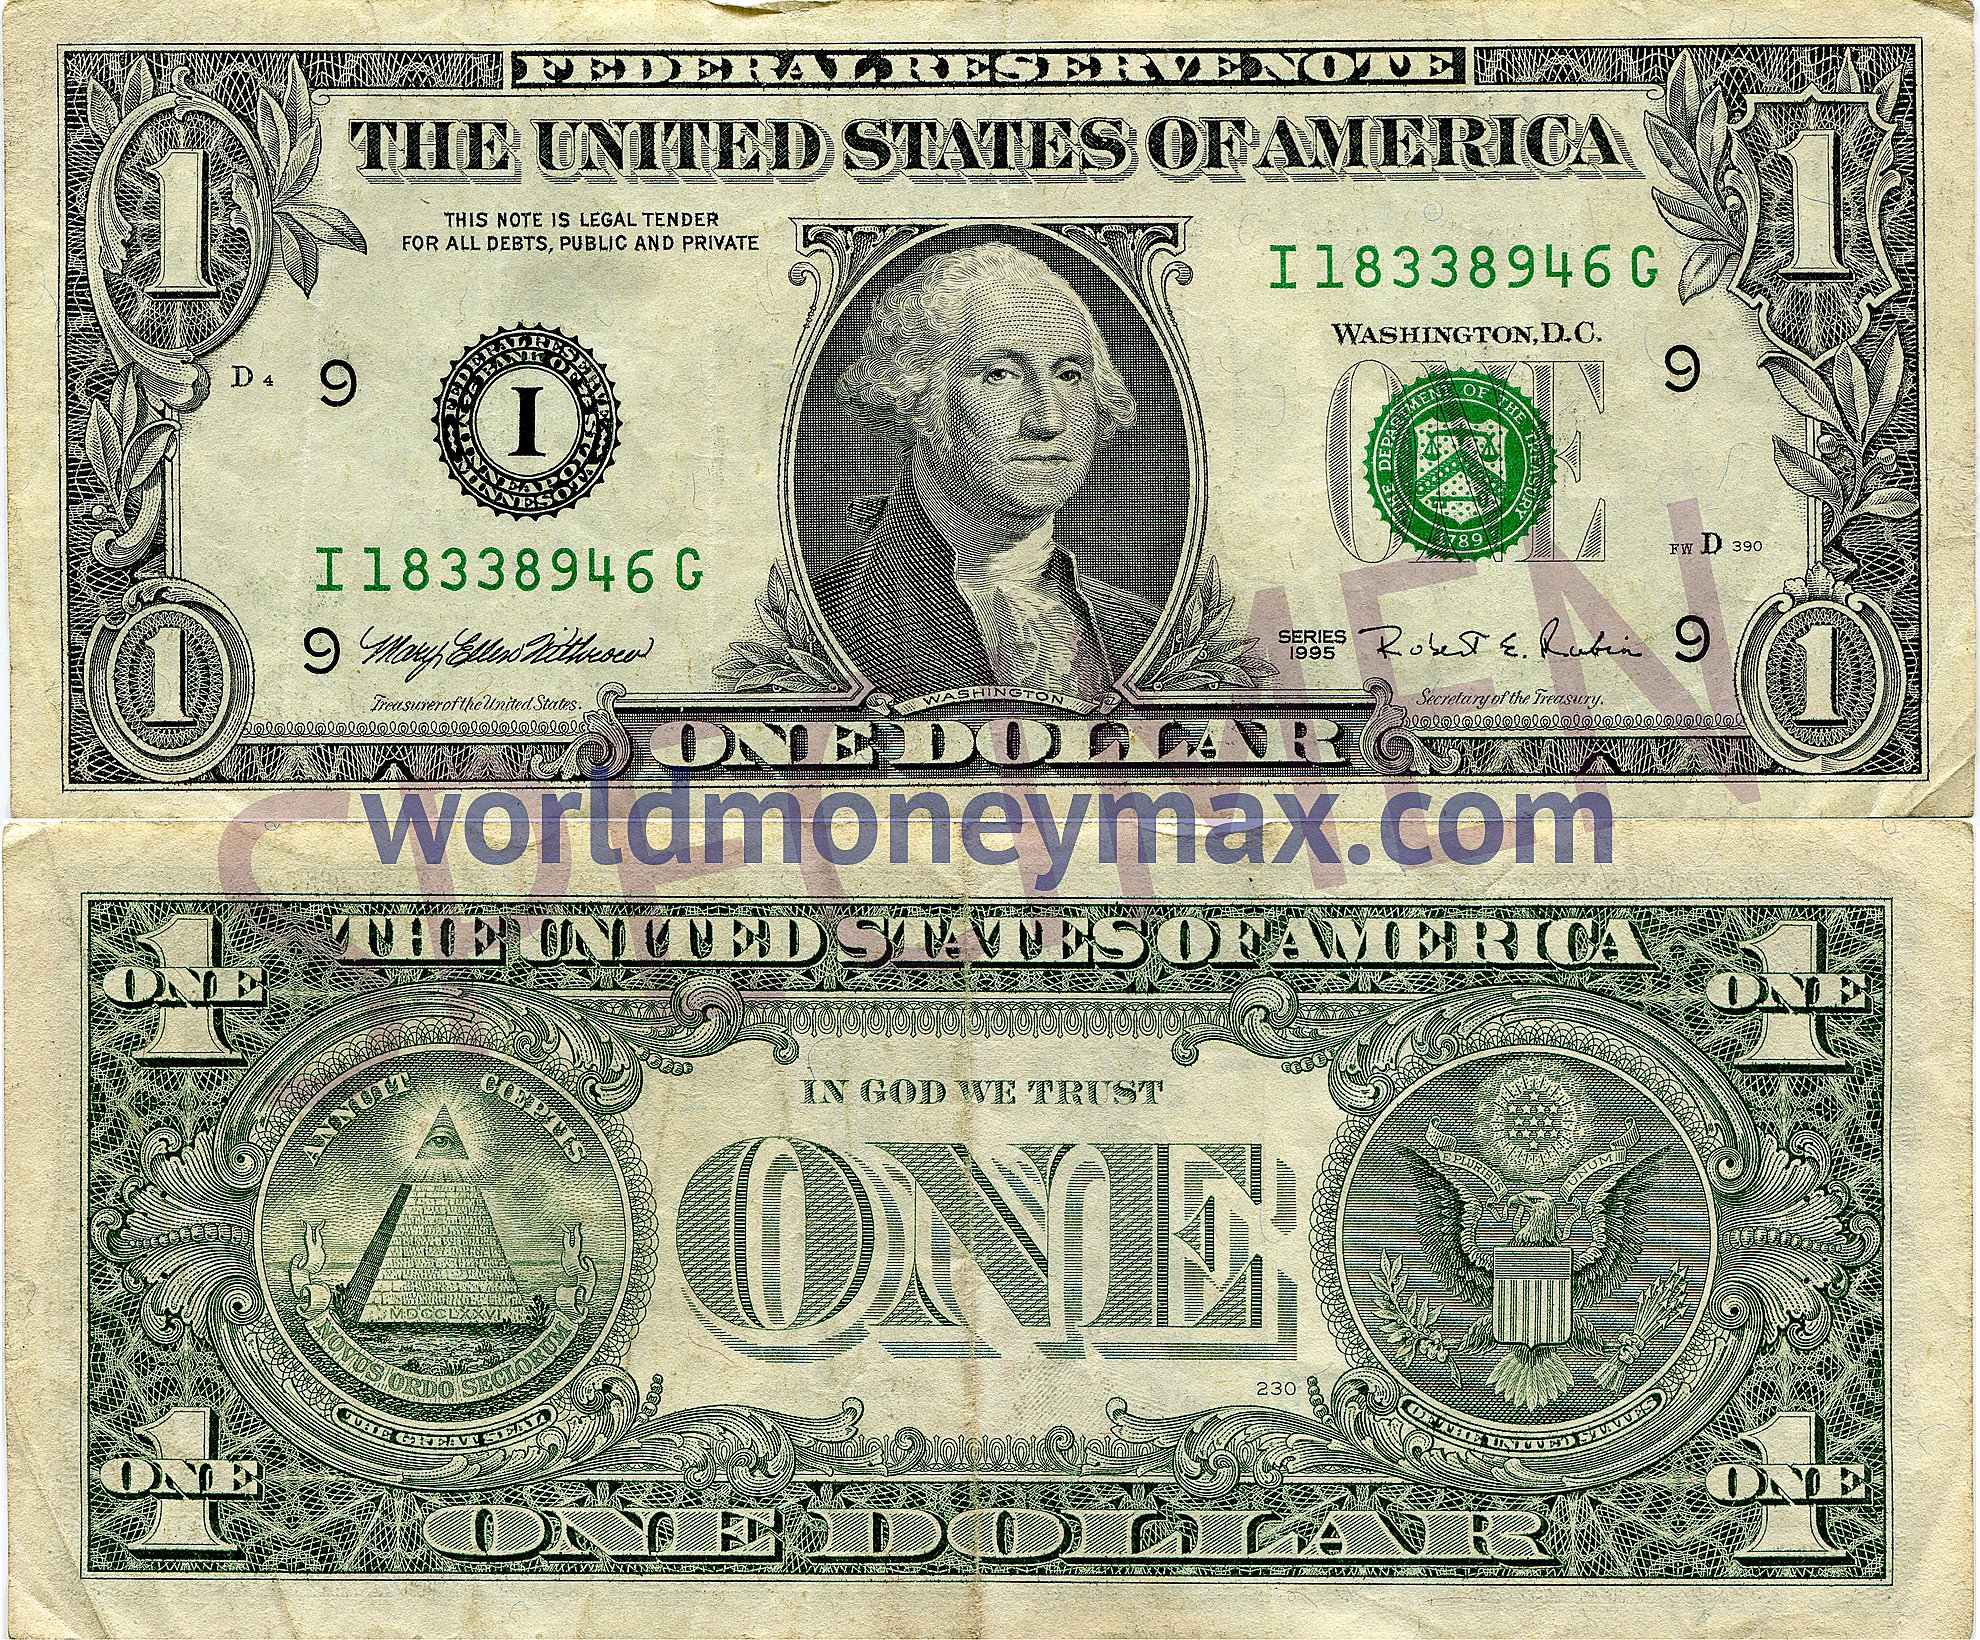 Usa 1 Dollar 1995 Banknote Worldmoneymax Com The United